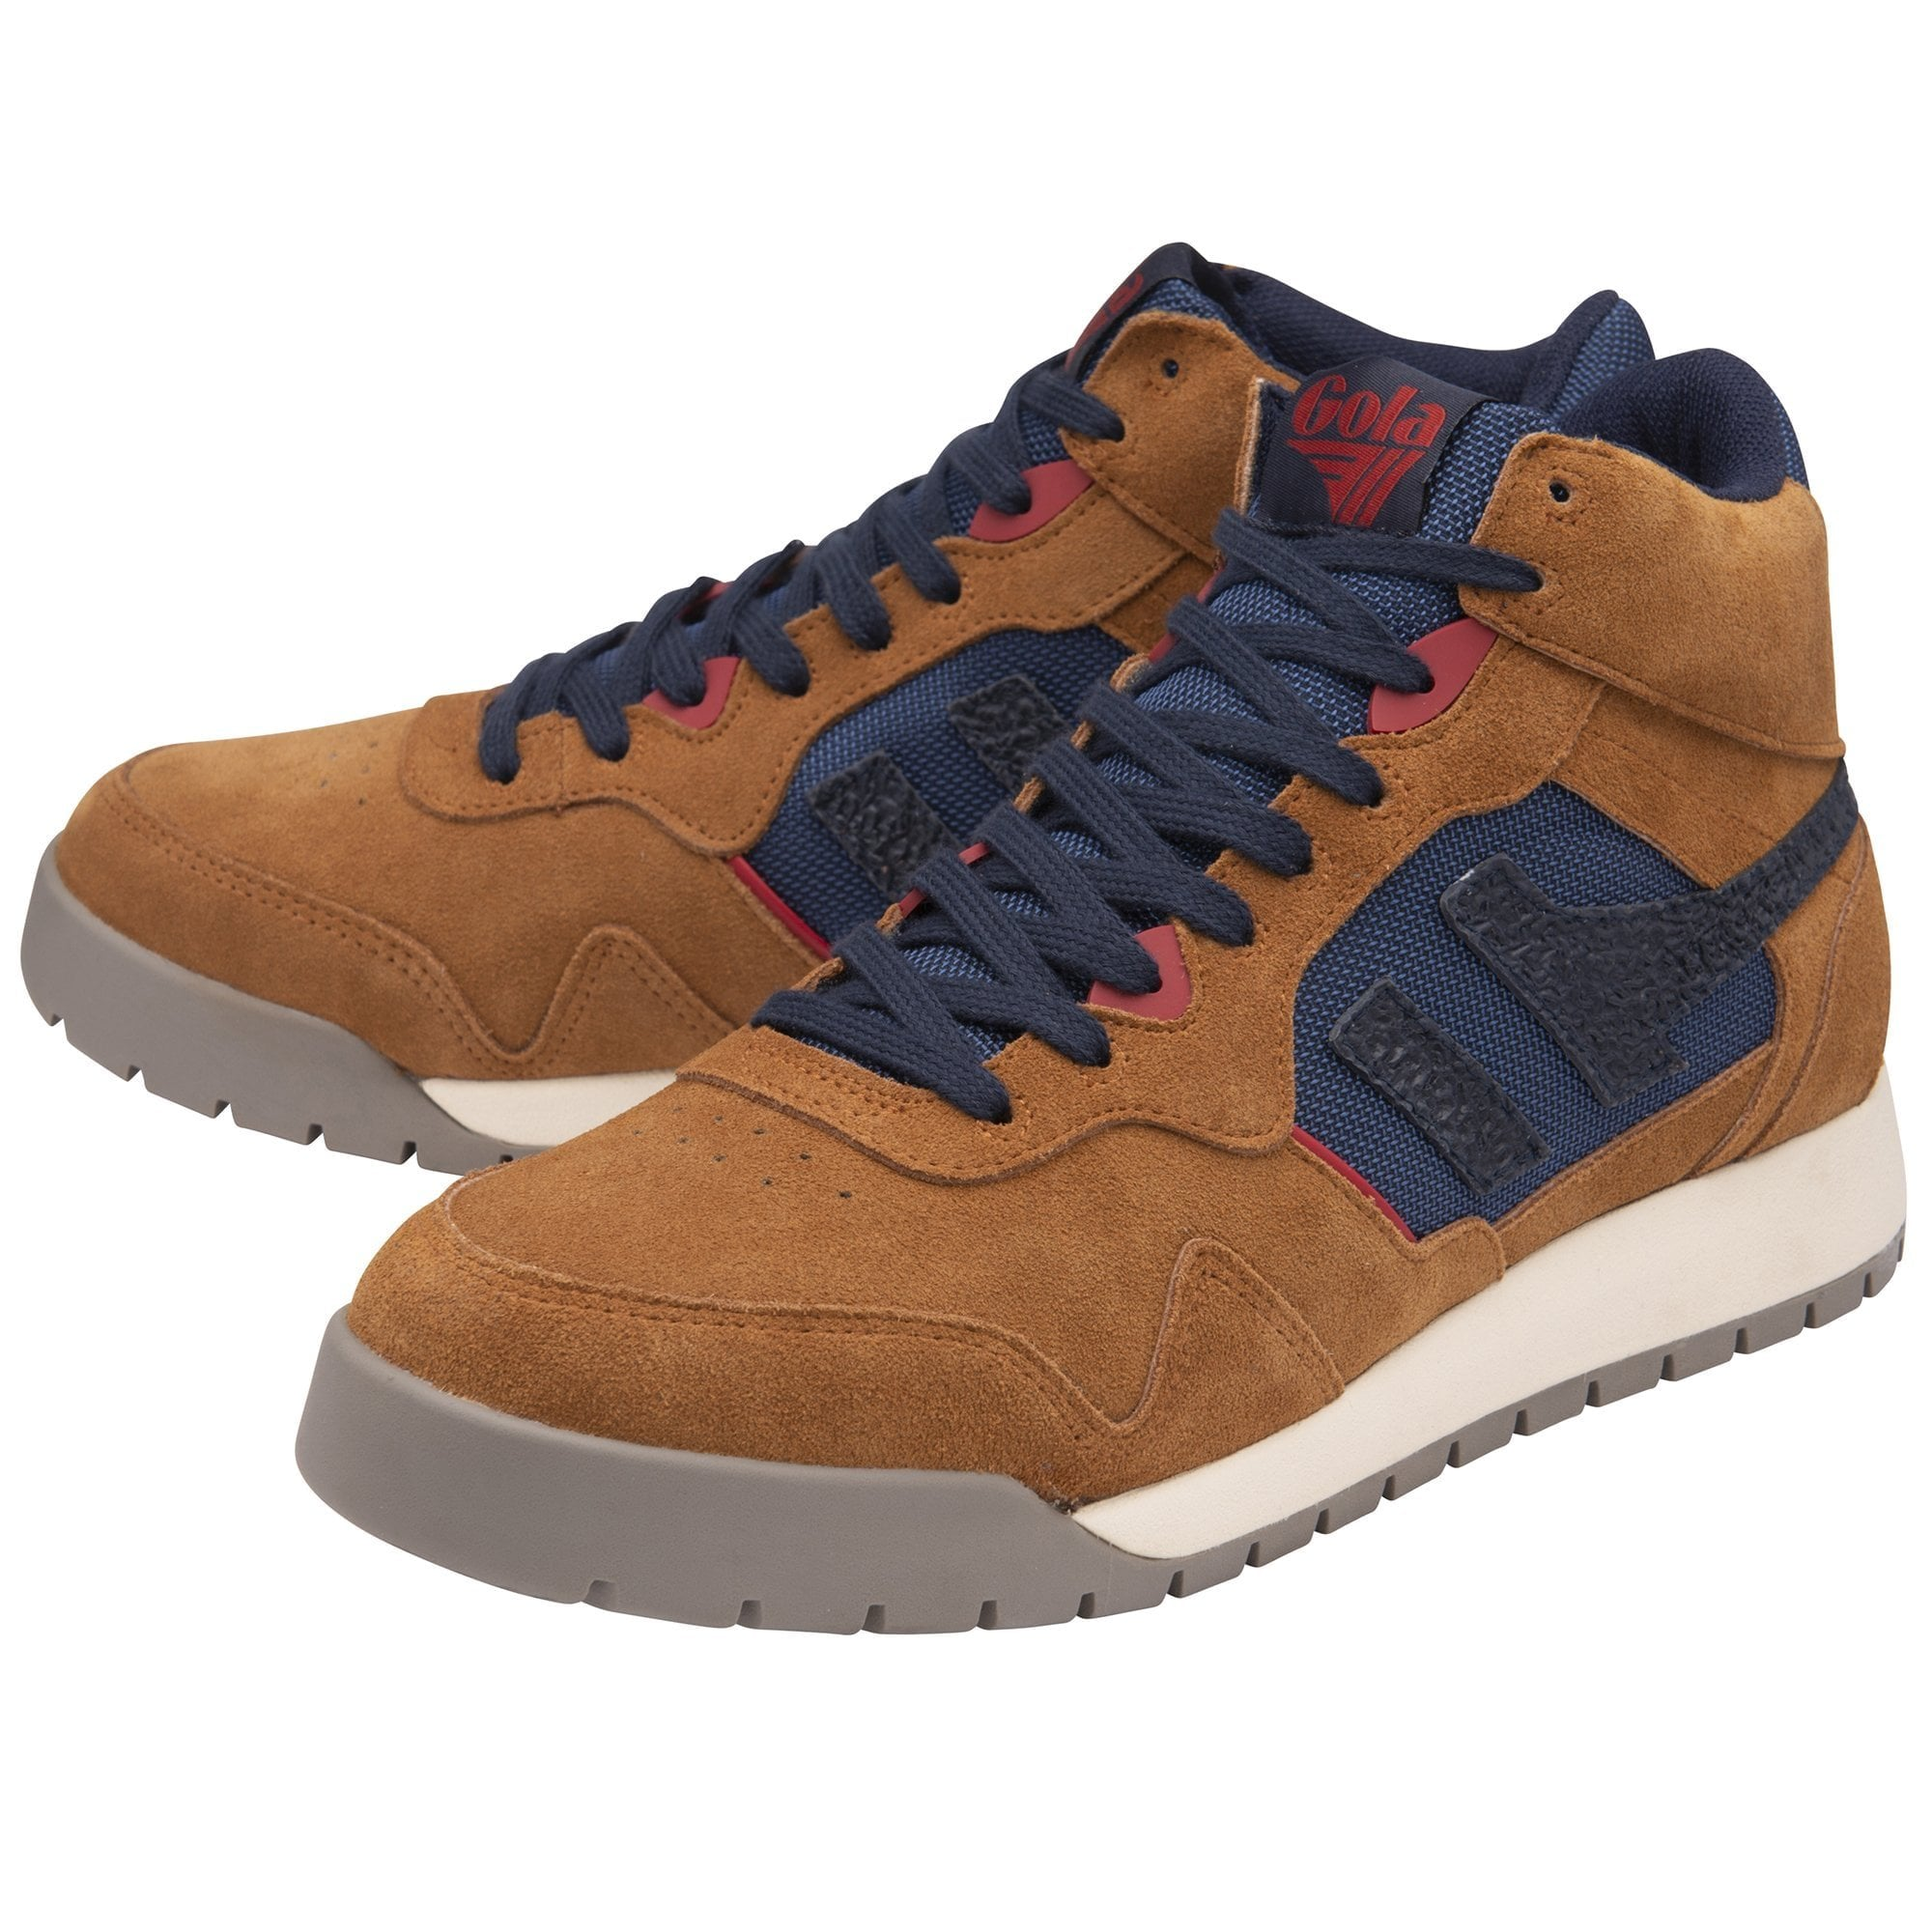 Summit High Sneakers